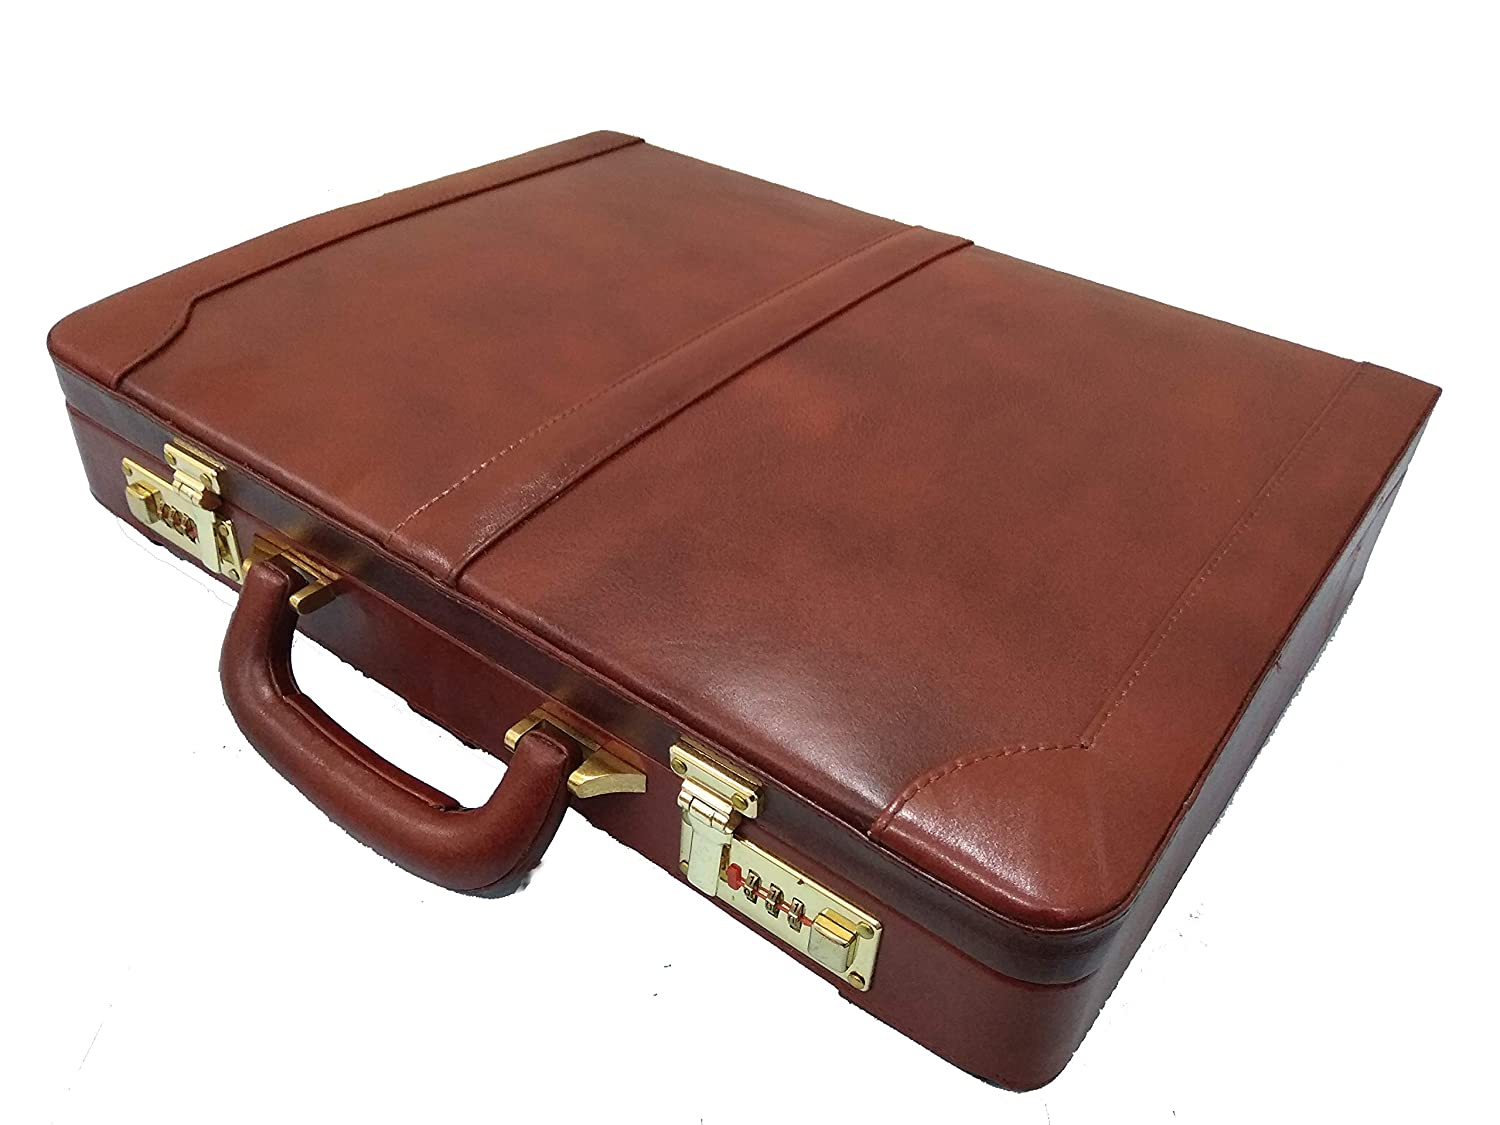 Zint Men's Genuine Leather Hard Briefcase Attache - Vintage Style